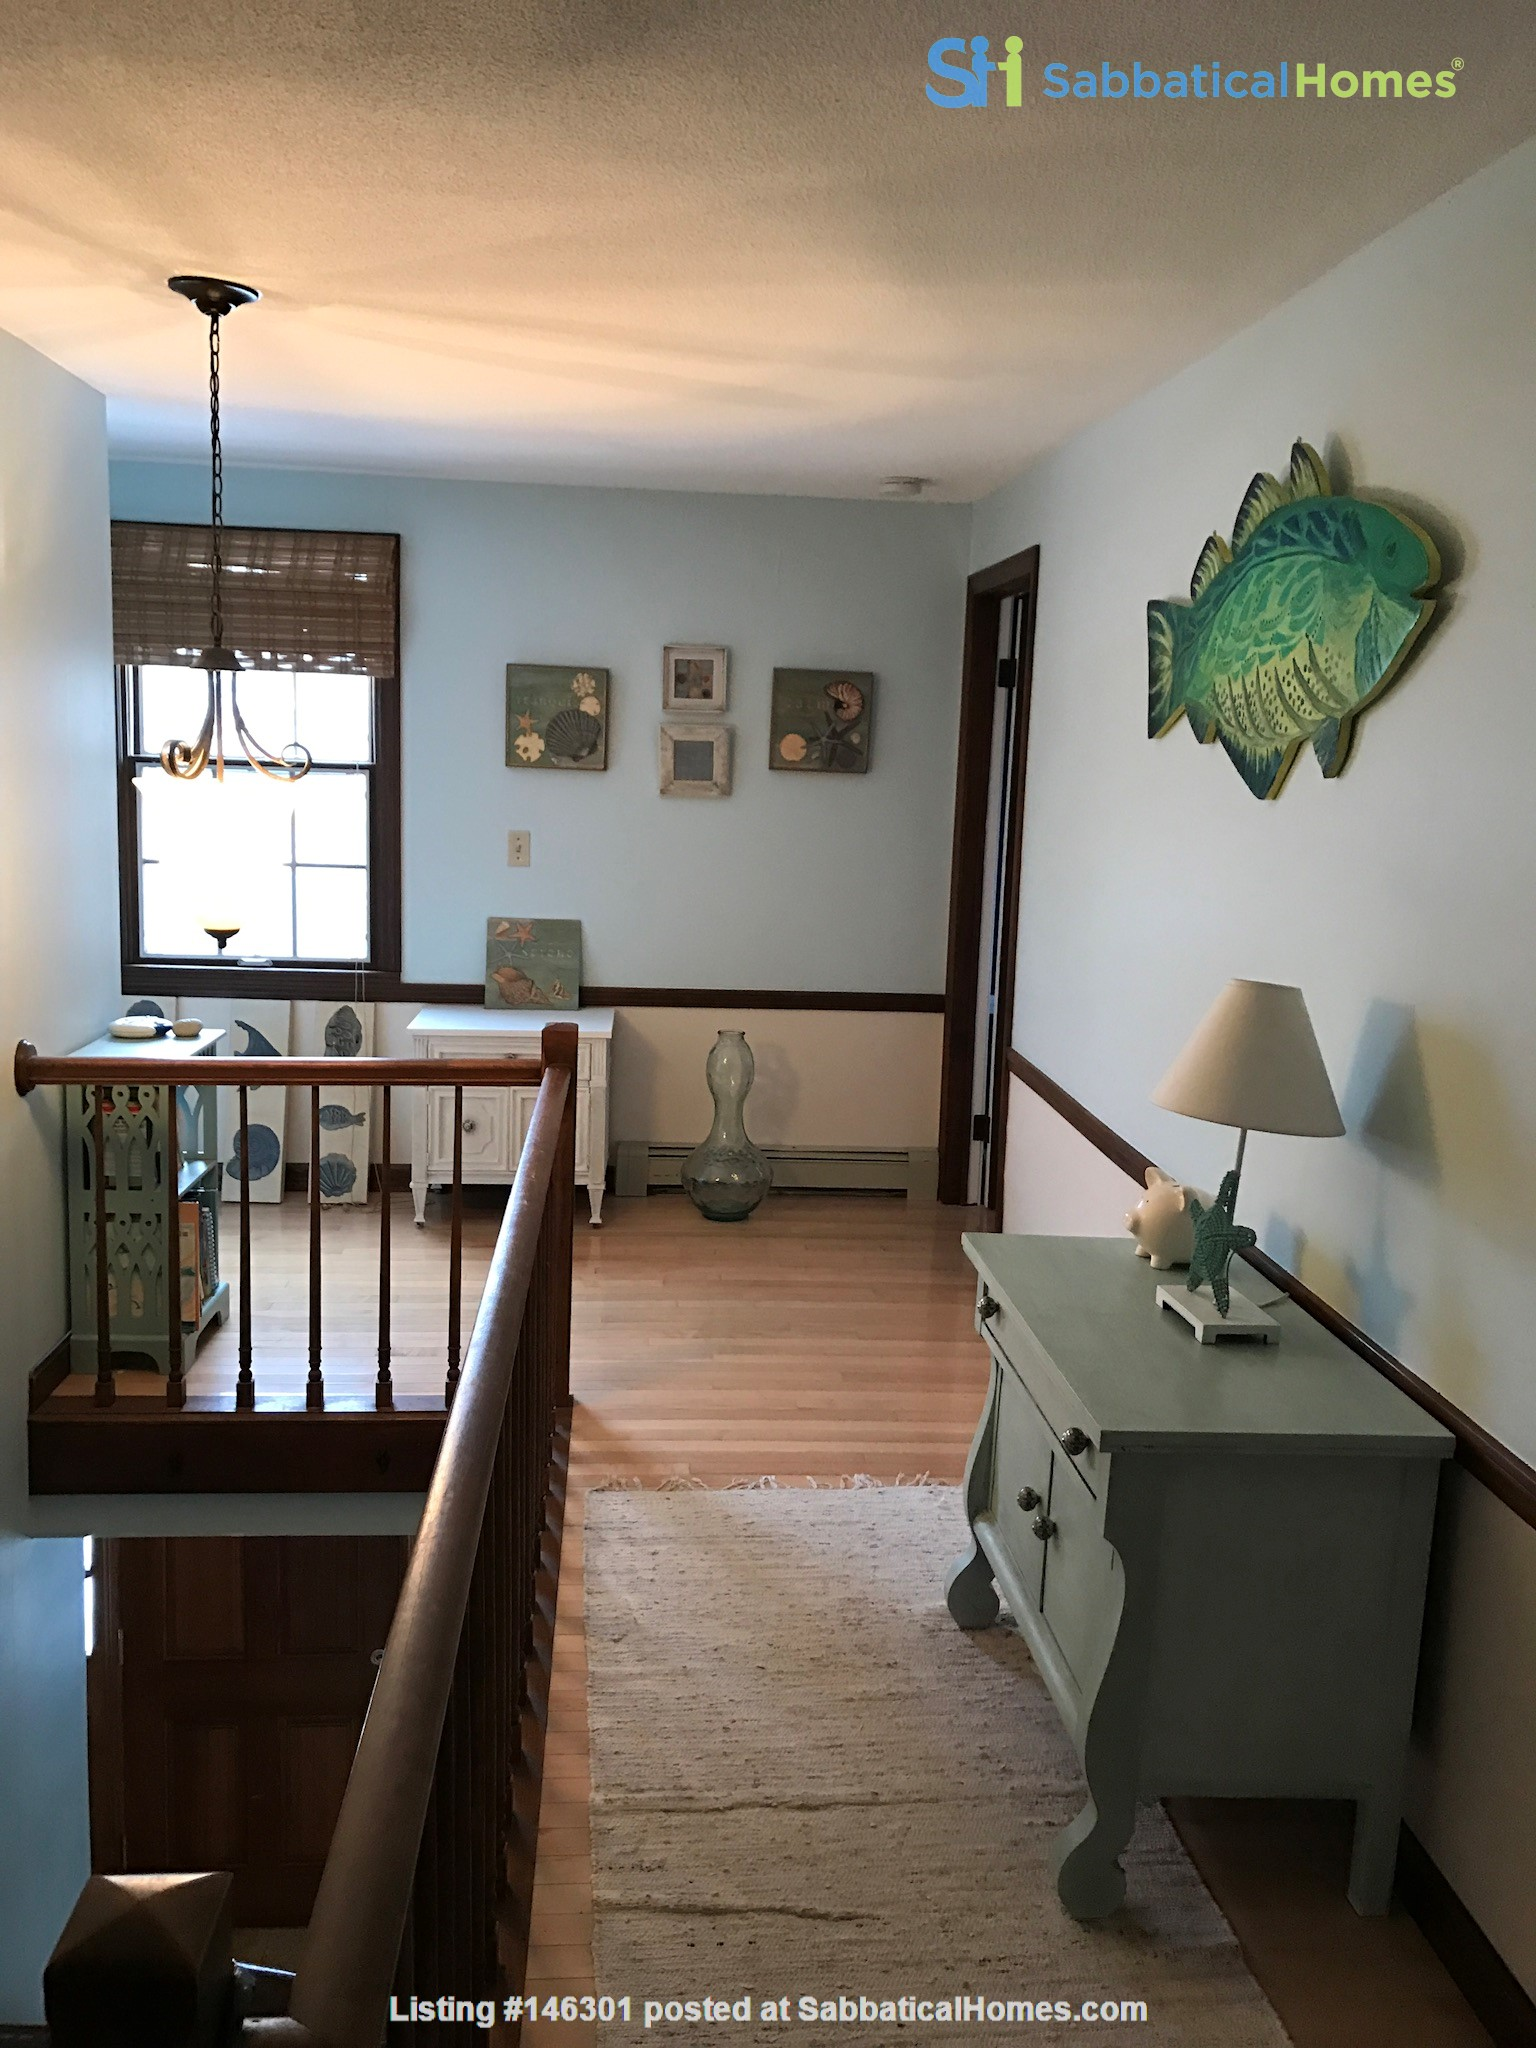 A quiet neighborhood offering coastal beauty and accessible location. Home Rental in Dartmouth 4